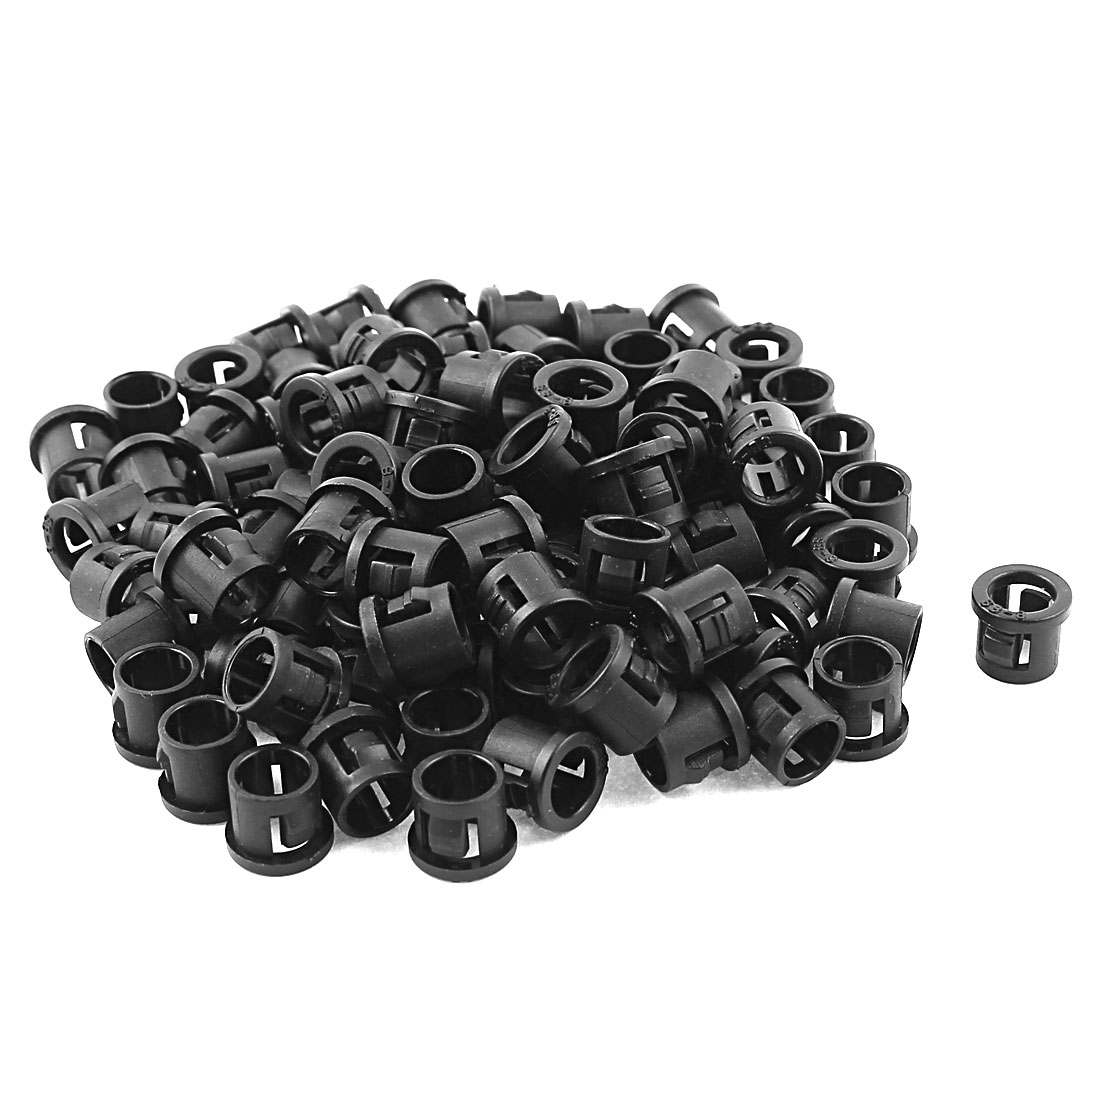 100pcs SB-8 7.8mm Mounting Hole Wire Cable Protector Nylon Snap Bushing Black